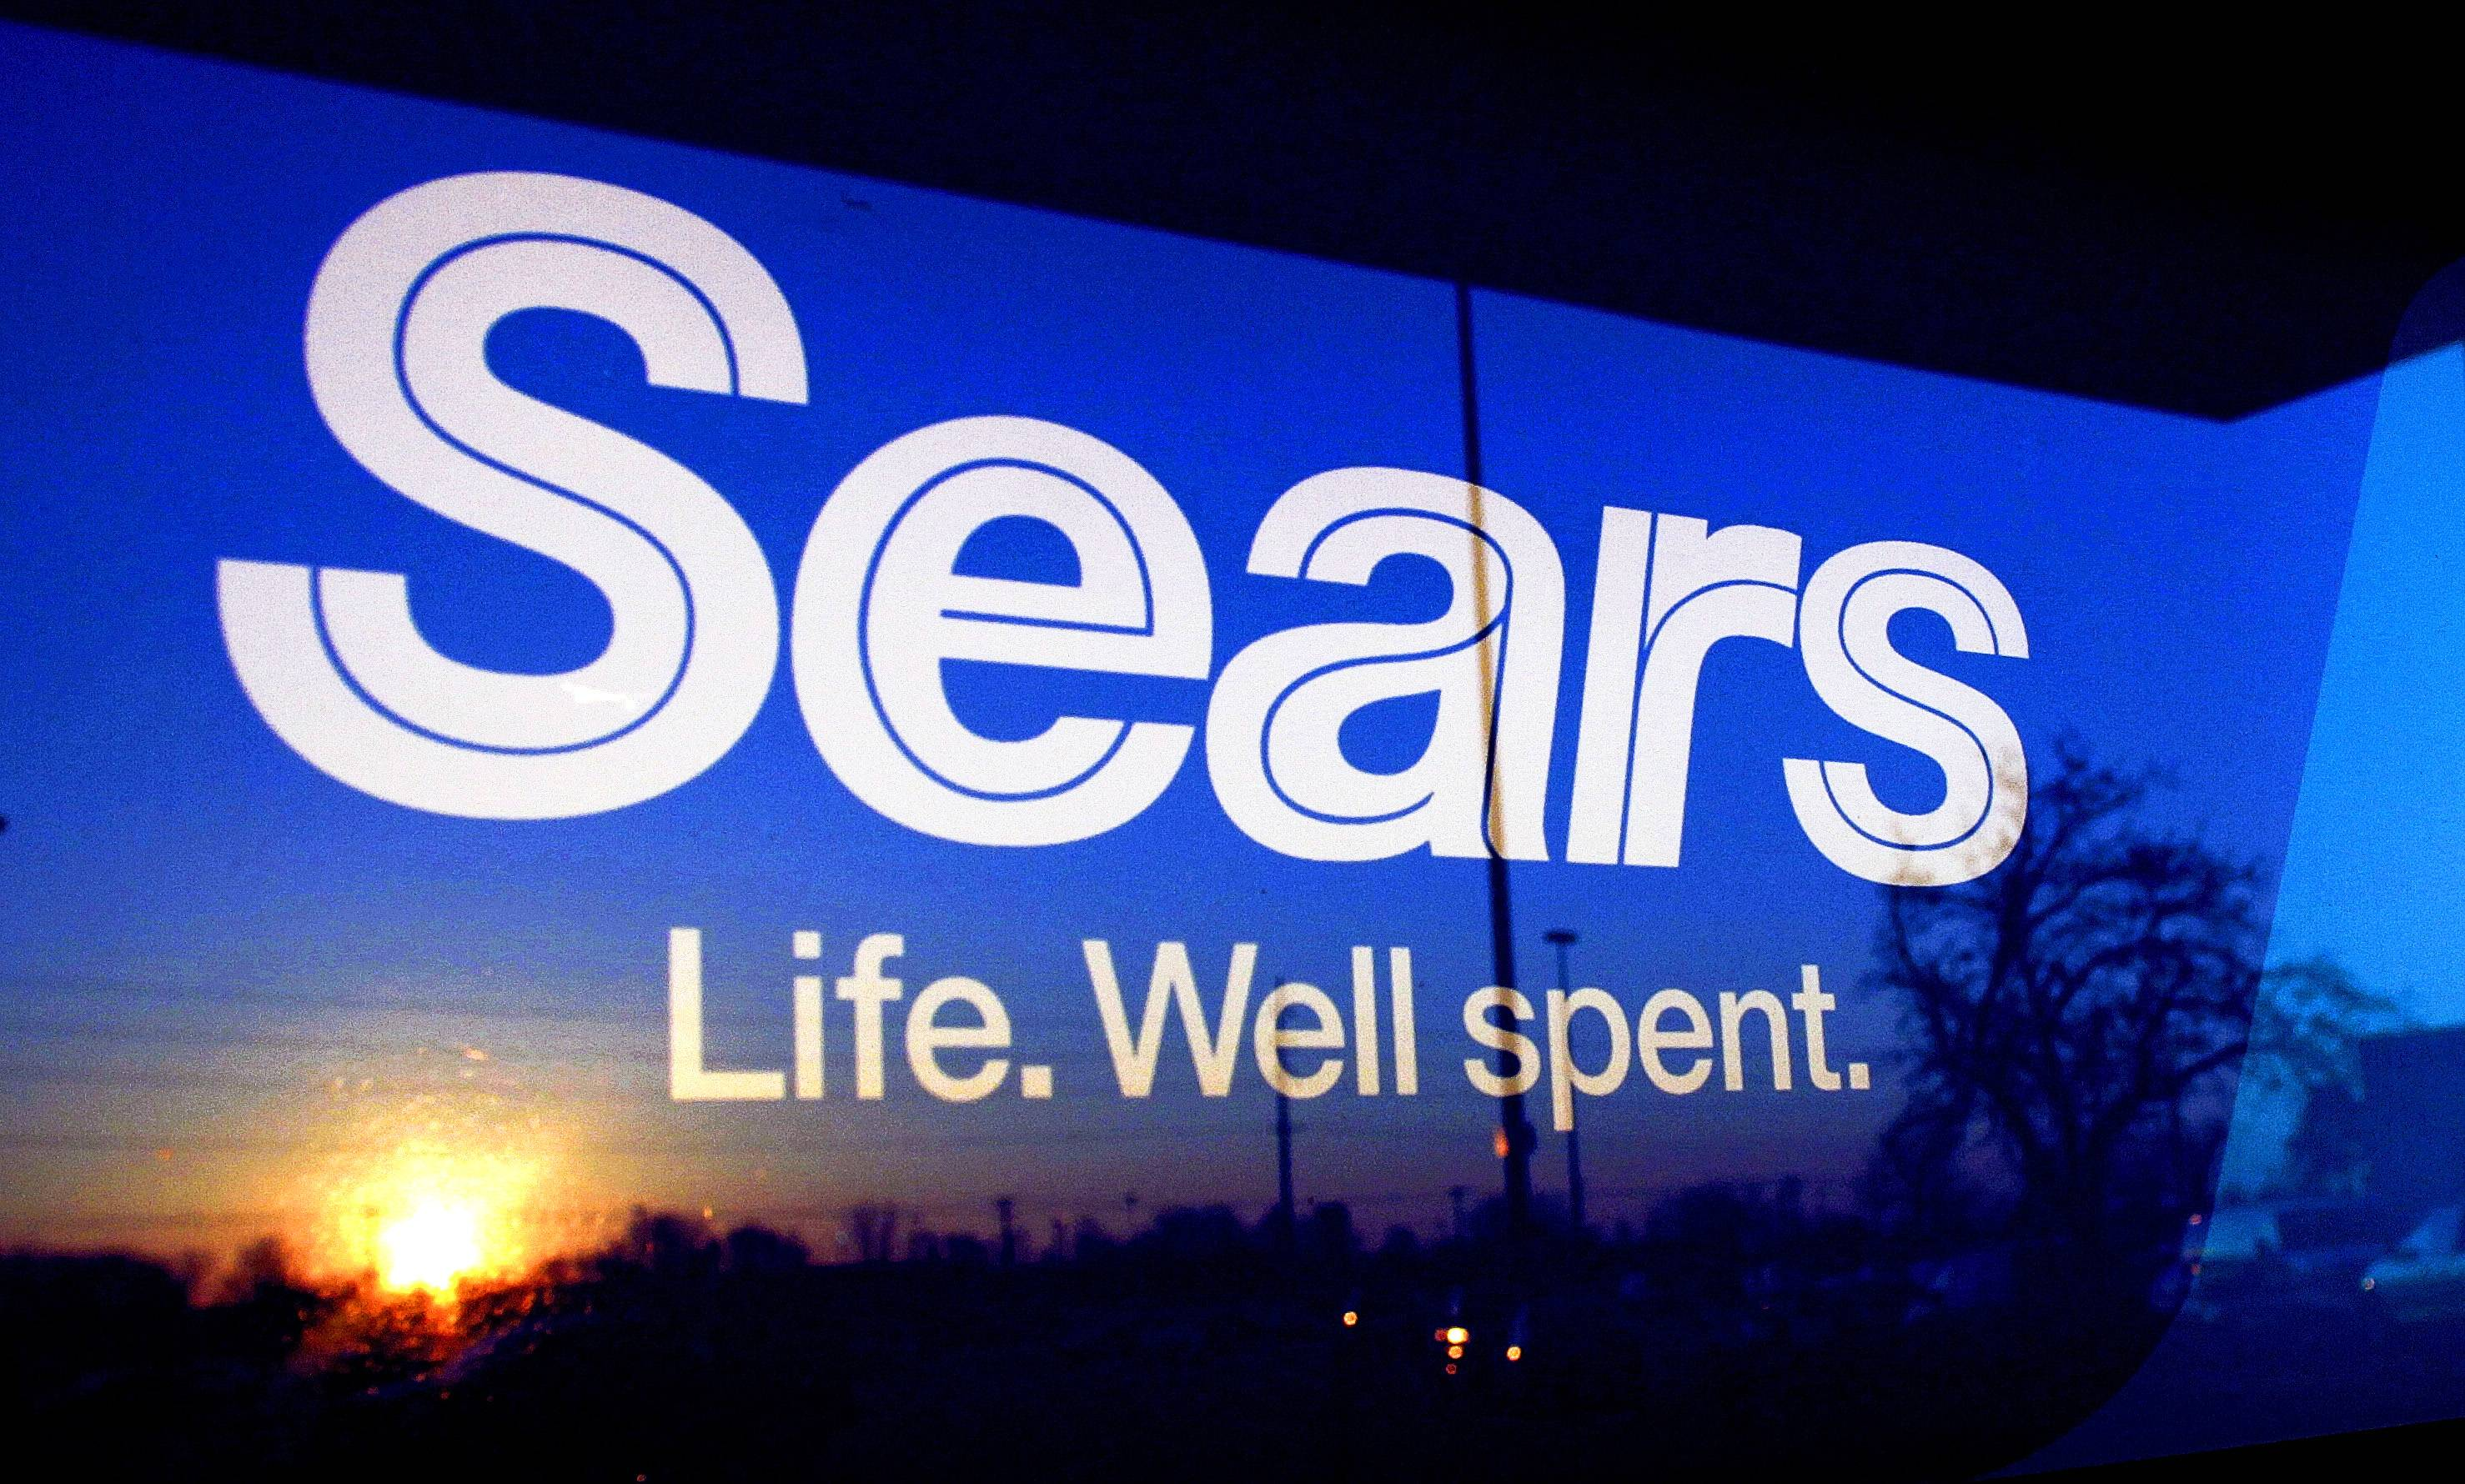 Sears Holdings Corp., the retailer run by hedge fund manager Edward Lampert, said Thursday its fourth-quarter loss narrowed to $358 million as it sold assets and trimmed costs.